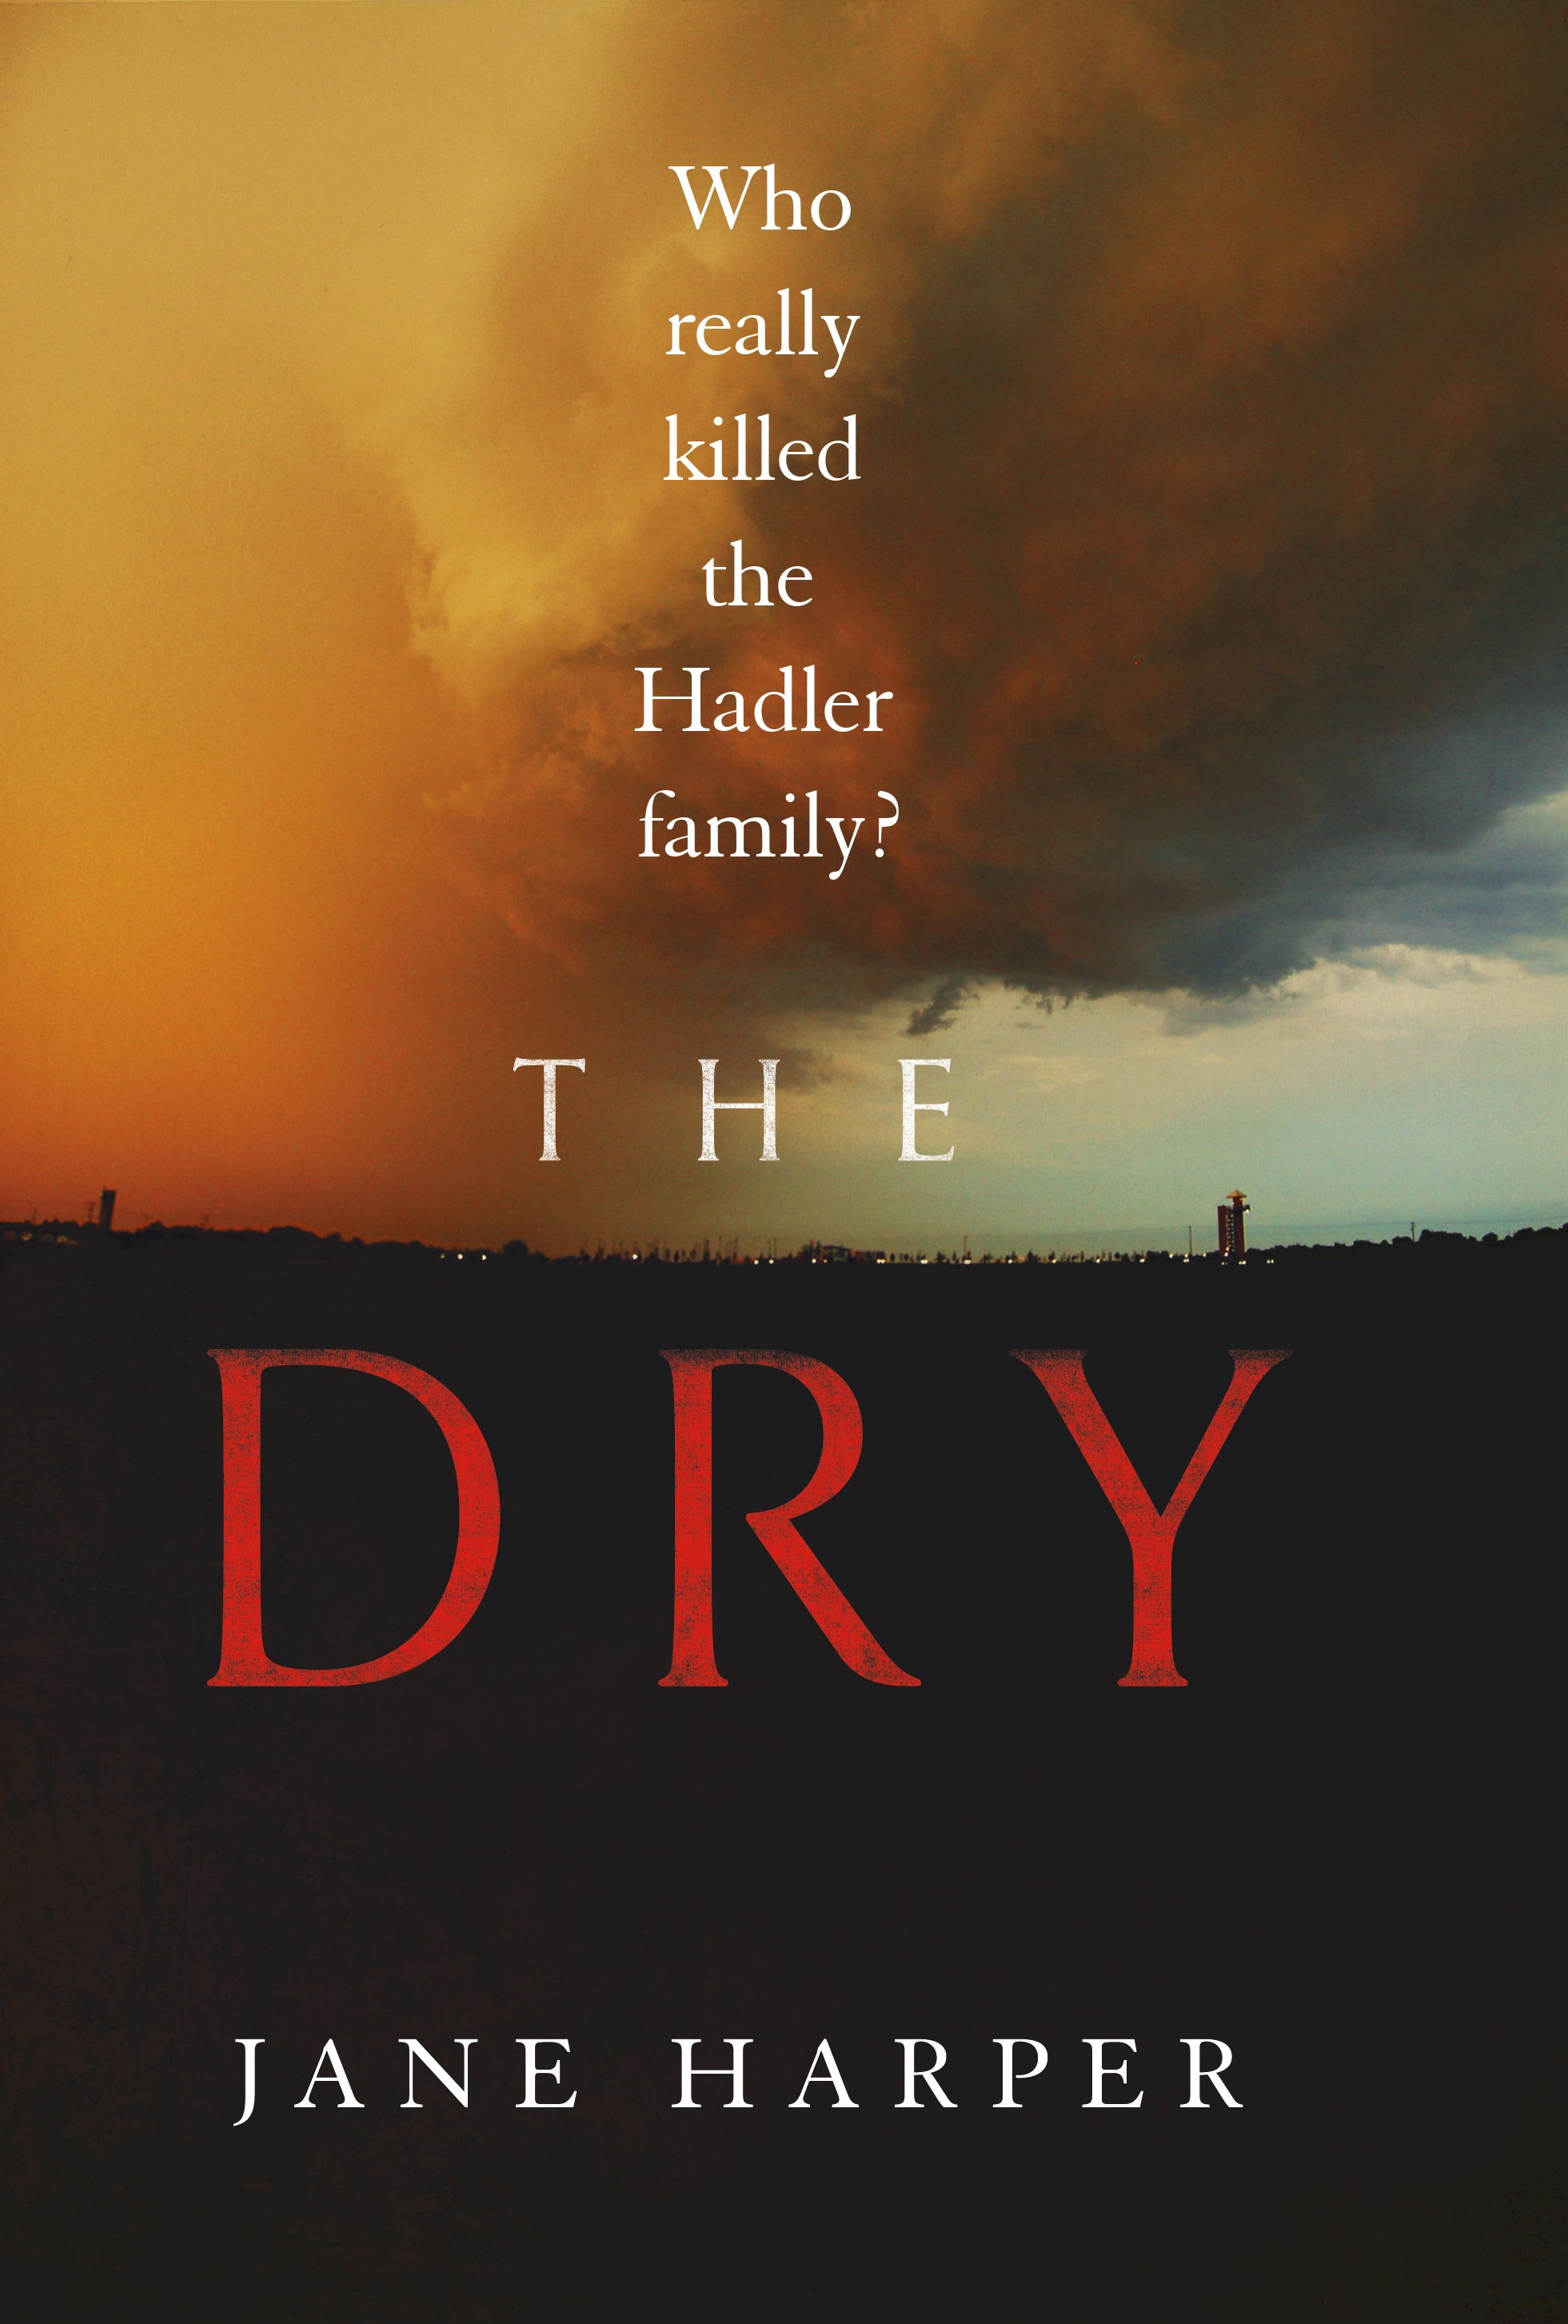 The Dry Cover copy.jpg